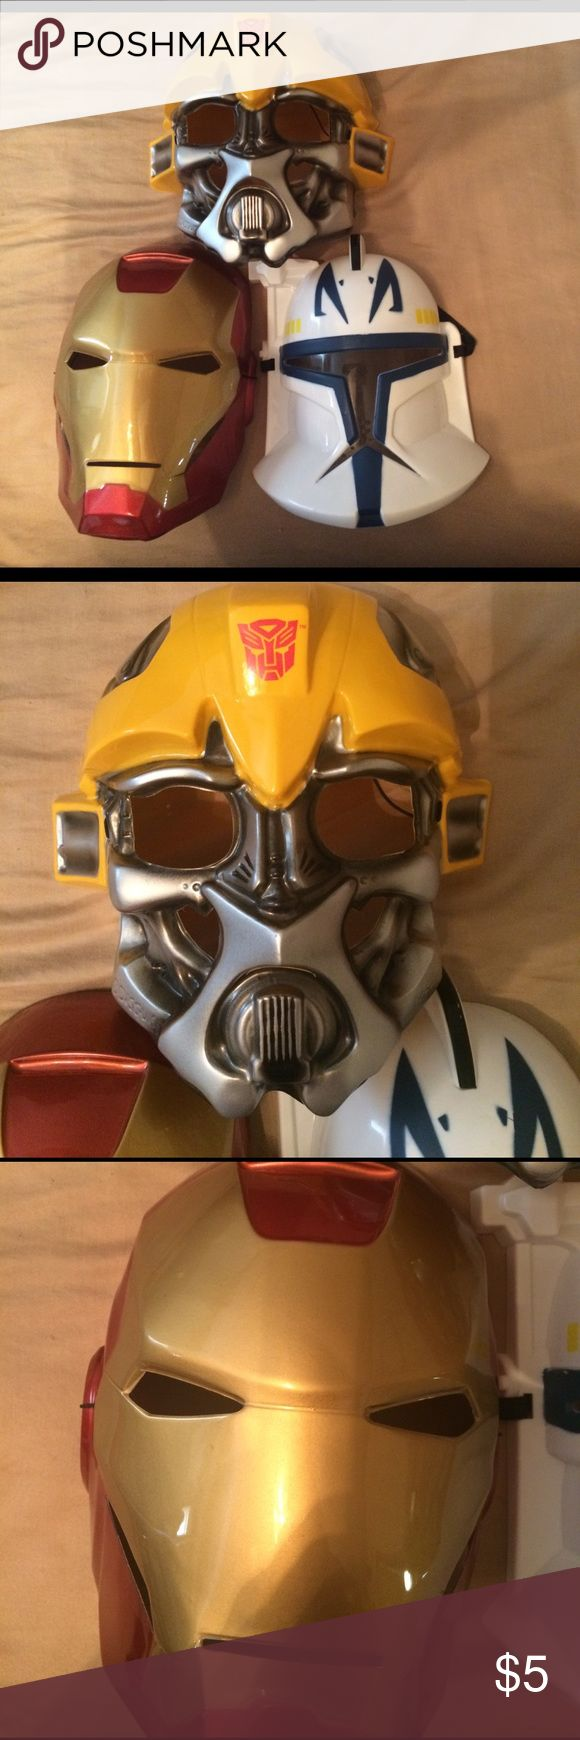 3 dress up masks 1 iron man, 1 transformer and 1 Star Wars dress up masks all in good shape Costumes Superhero